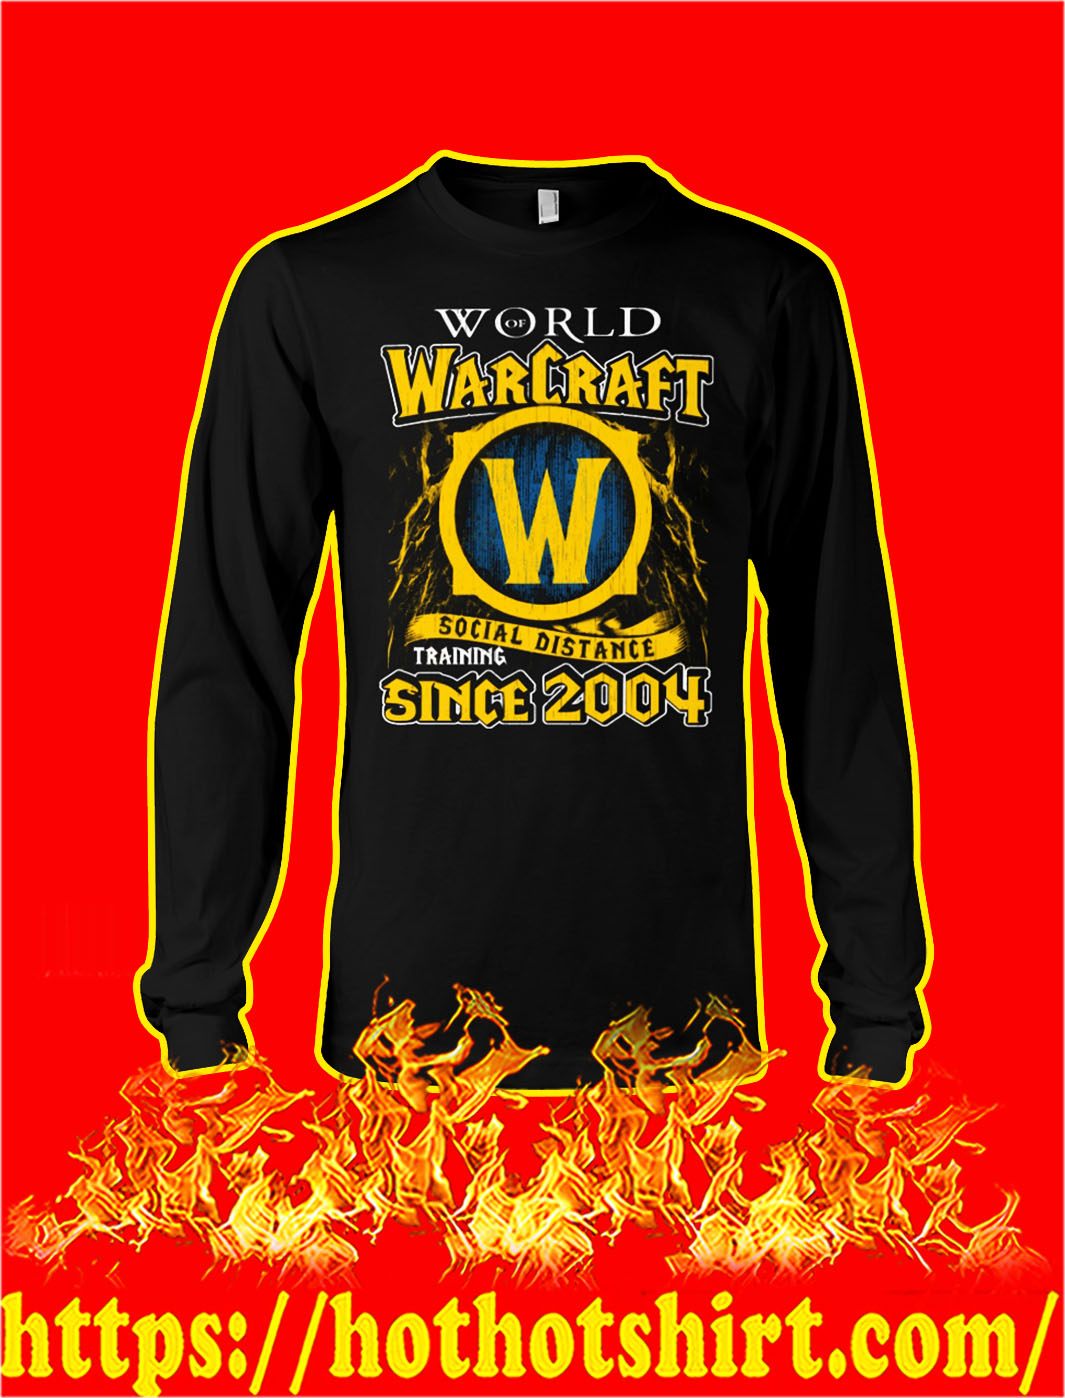 World of warcraft social distance training since 2004 longsleeve tee